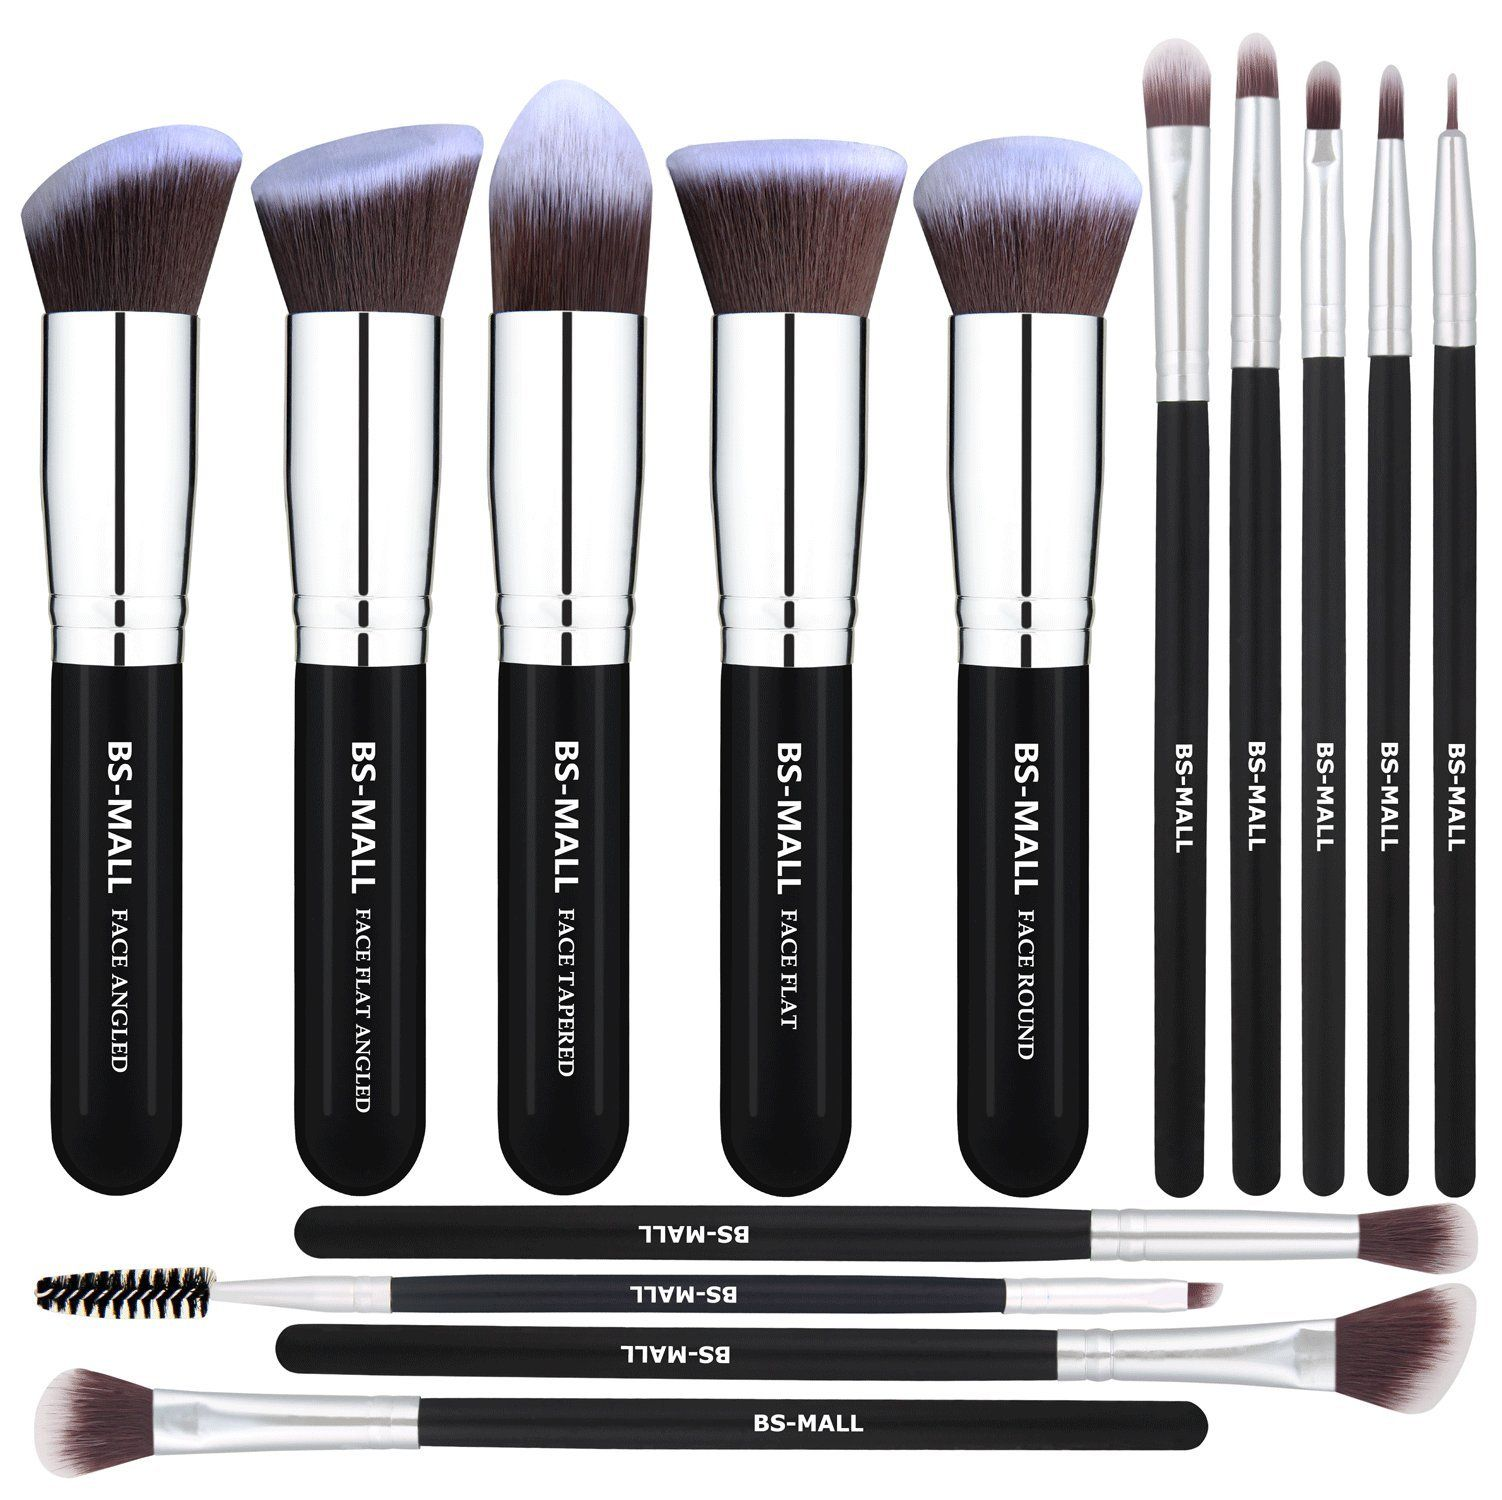 BSMALL Makeup Brushes Premium 14 Pcs Synthetic Foundation